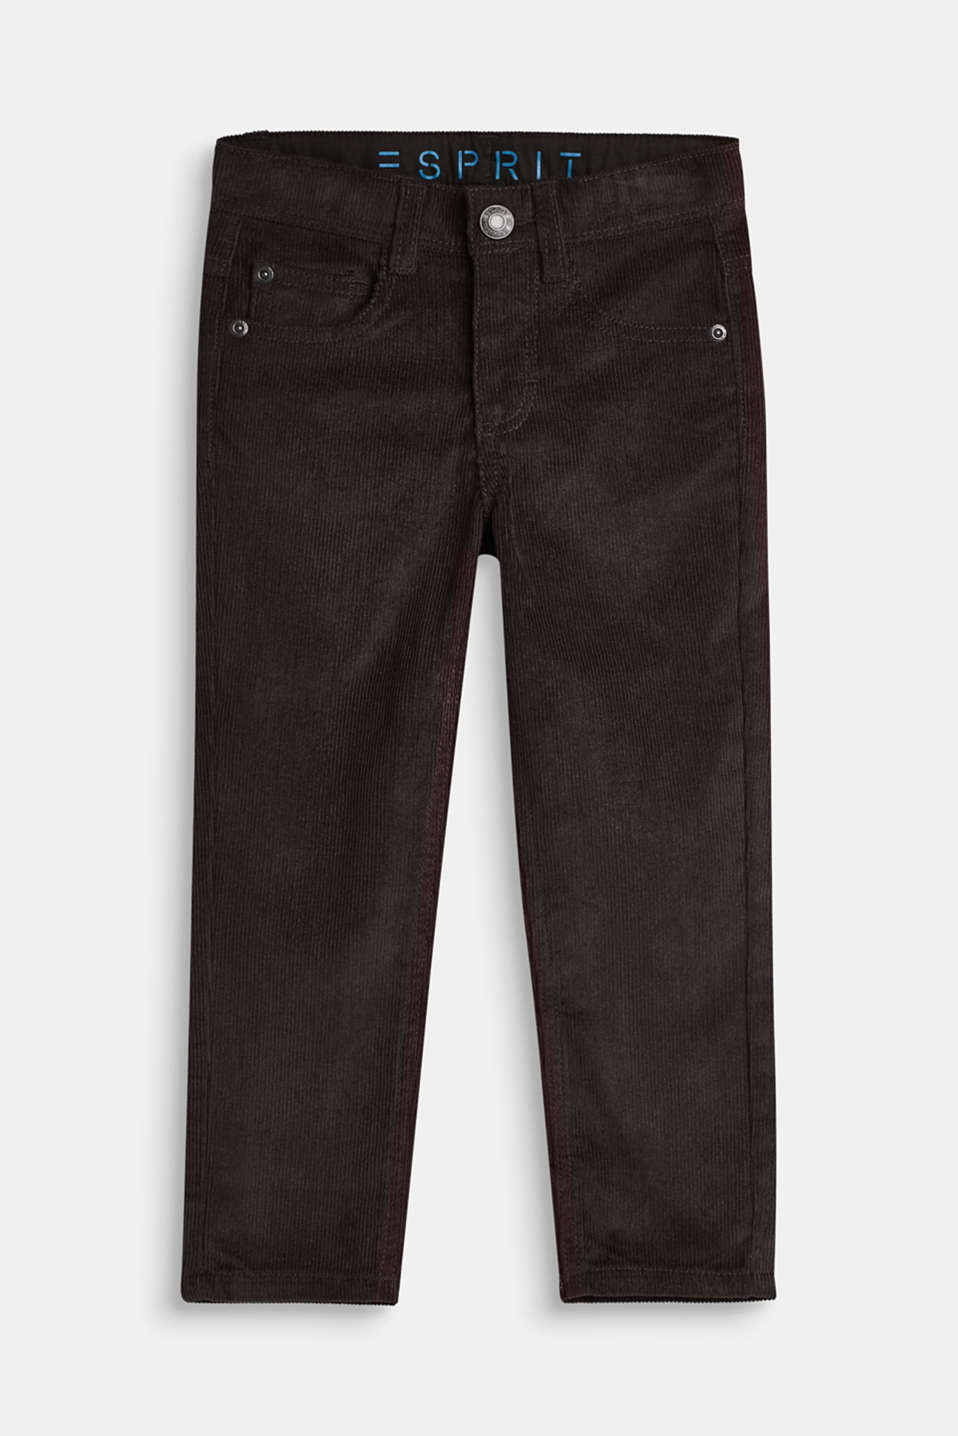 Esprit - Needlecord trousers, 100% cotton